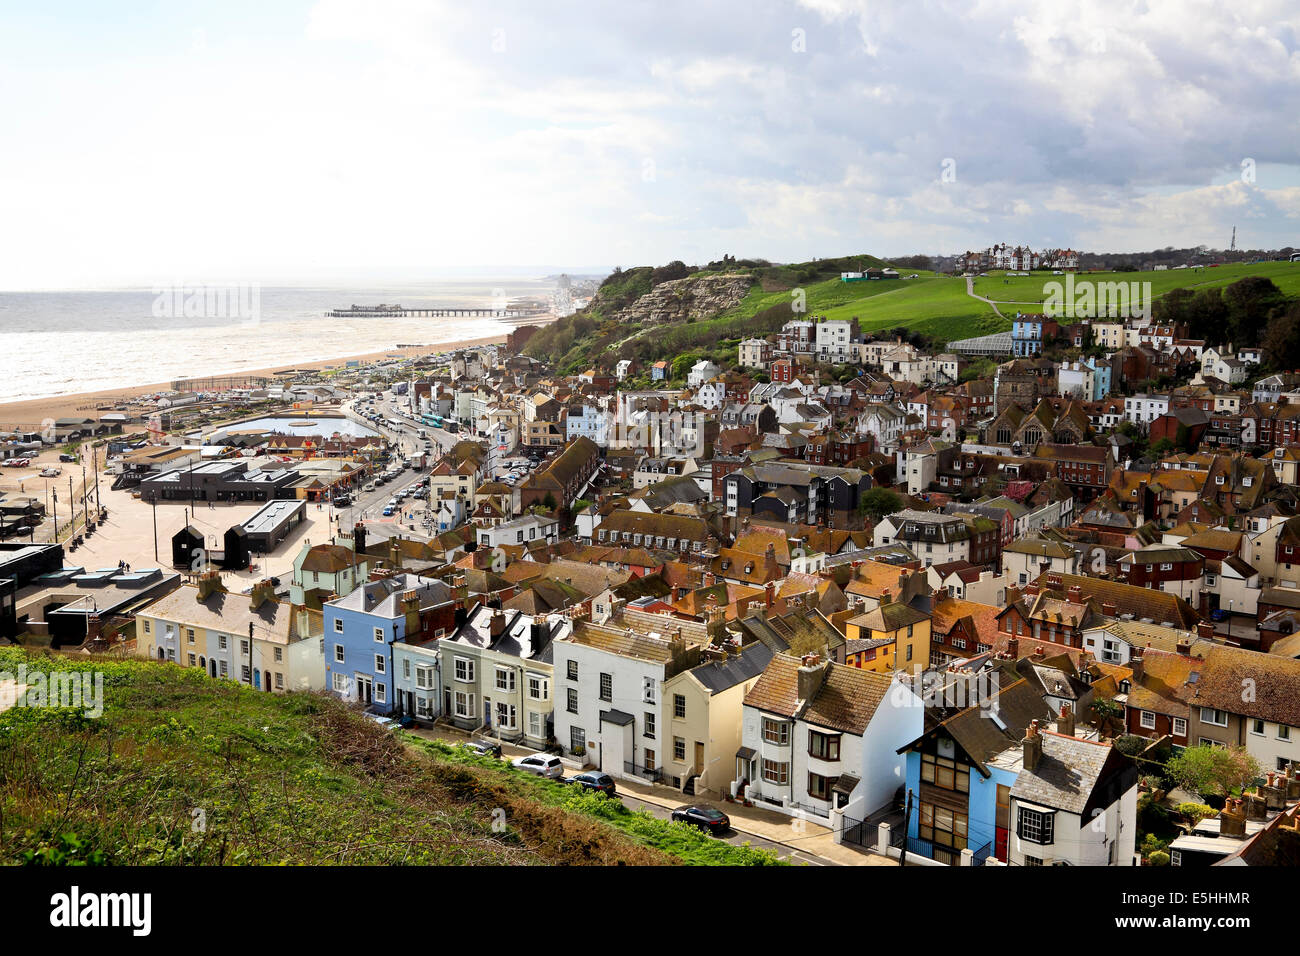 9591. Old Town, Hastings, East Sussex. - Stock Image